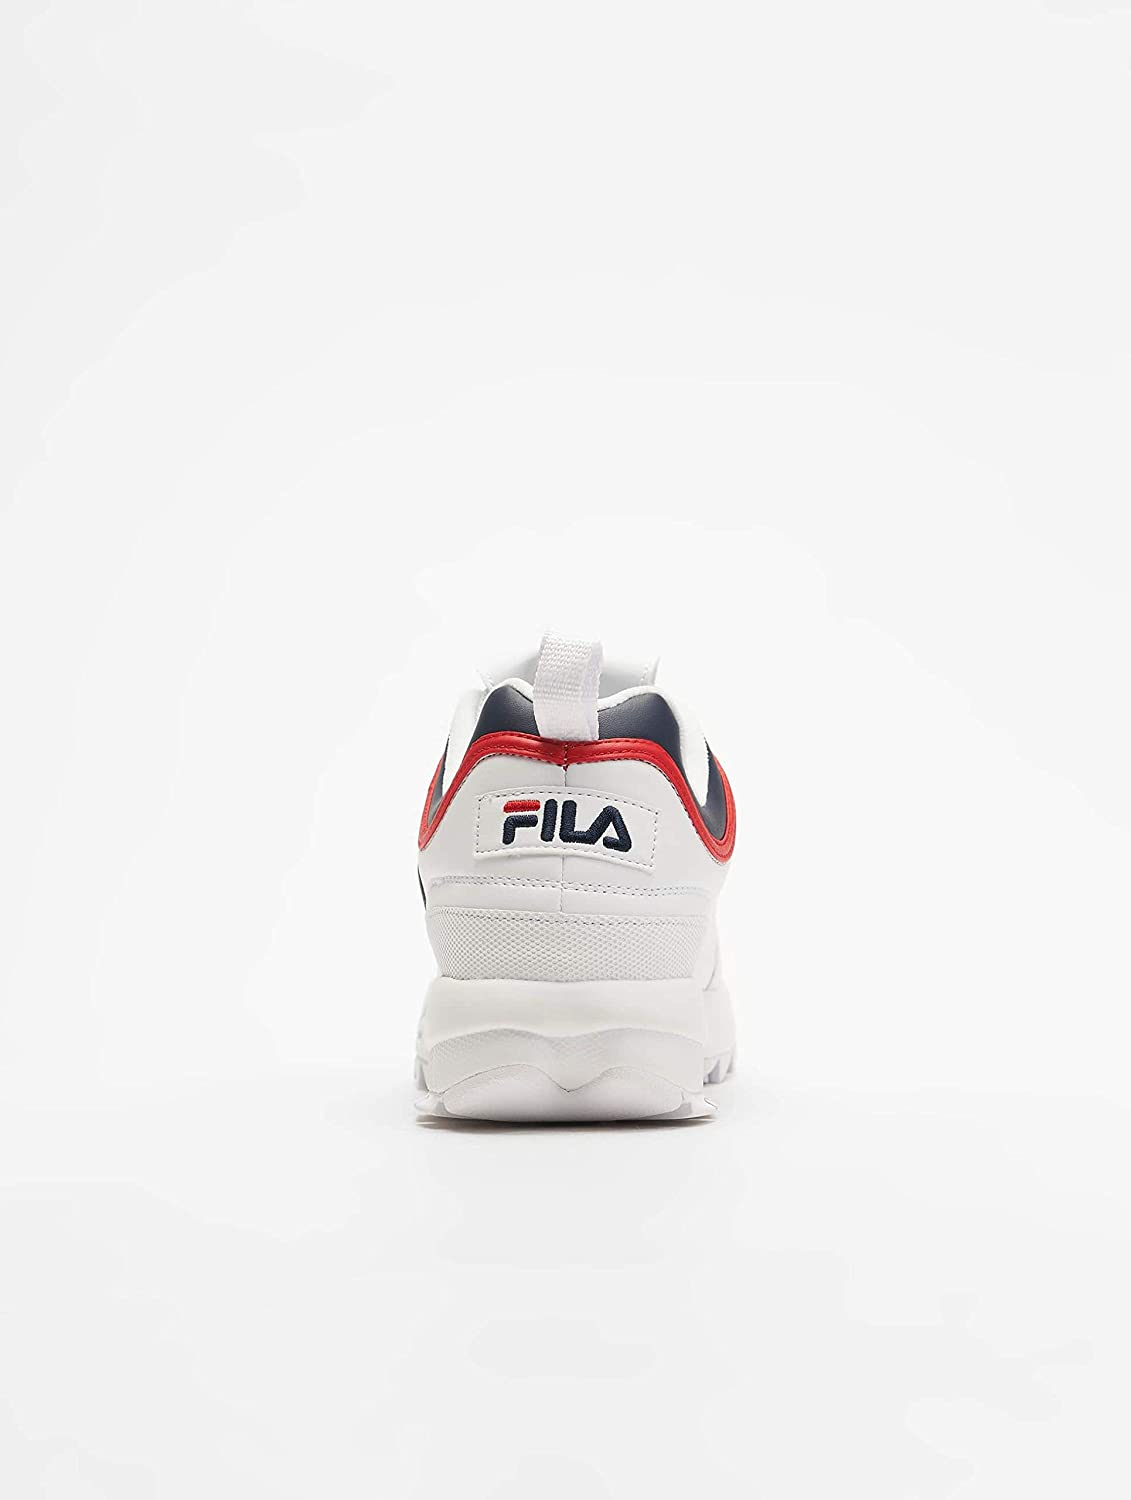 Fila Disruptor CB Low 1010575 01M